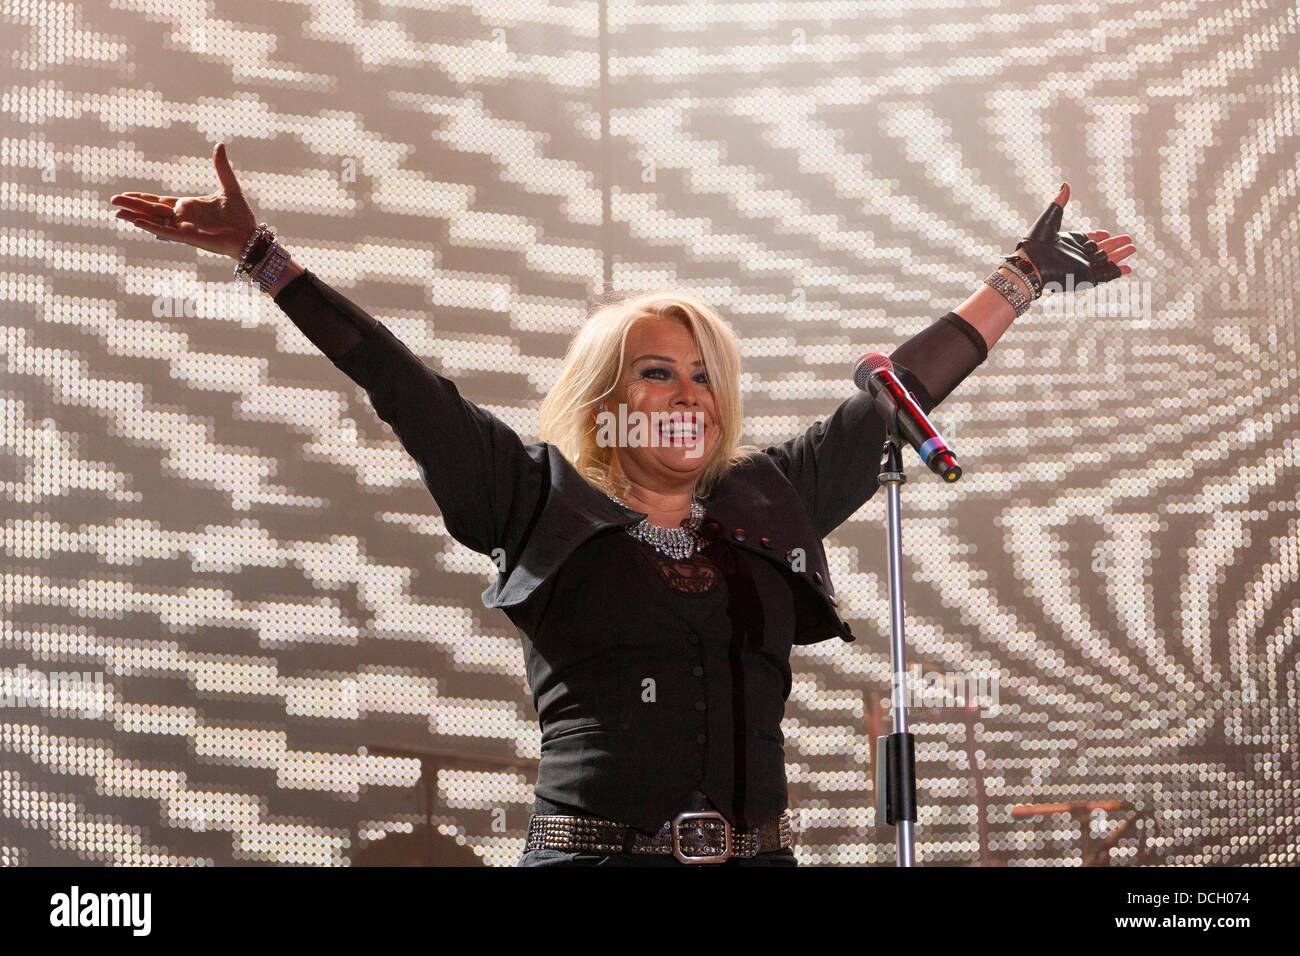 Remenham, Henley-on-Thames, Oxfordshire, UK. 17 August 2013. English pop singer KIM WILDE performs on-stage at the - Stock Image